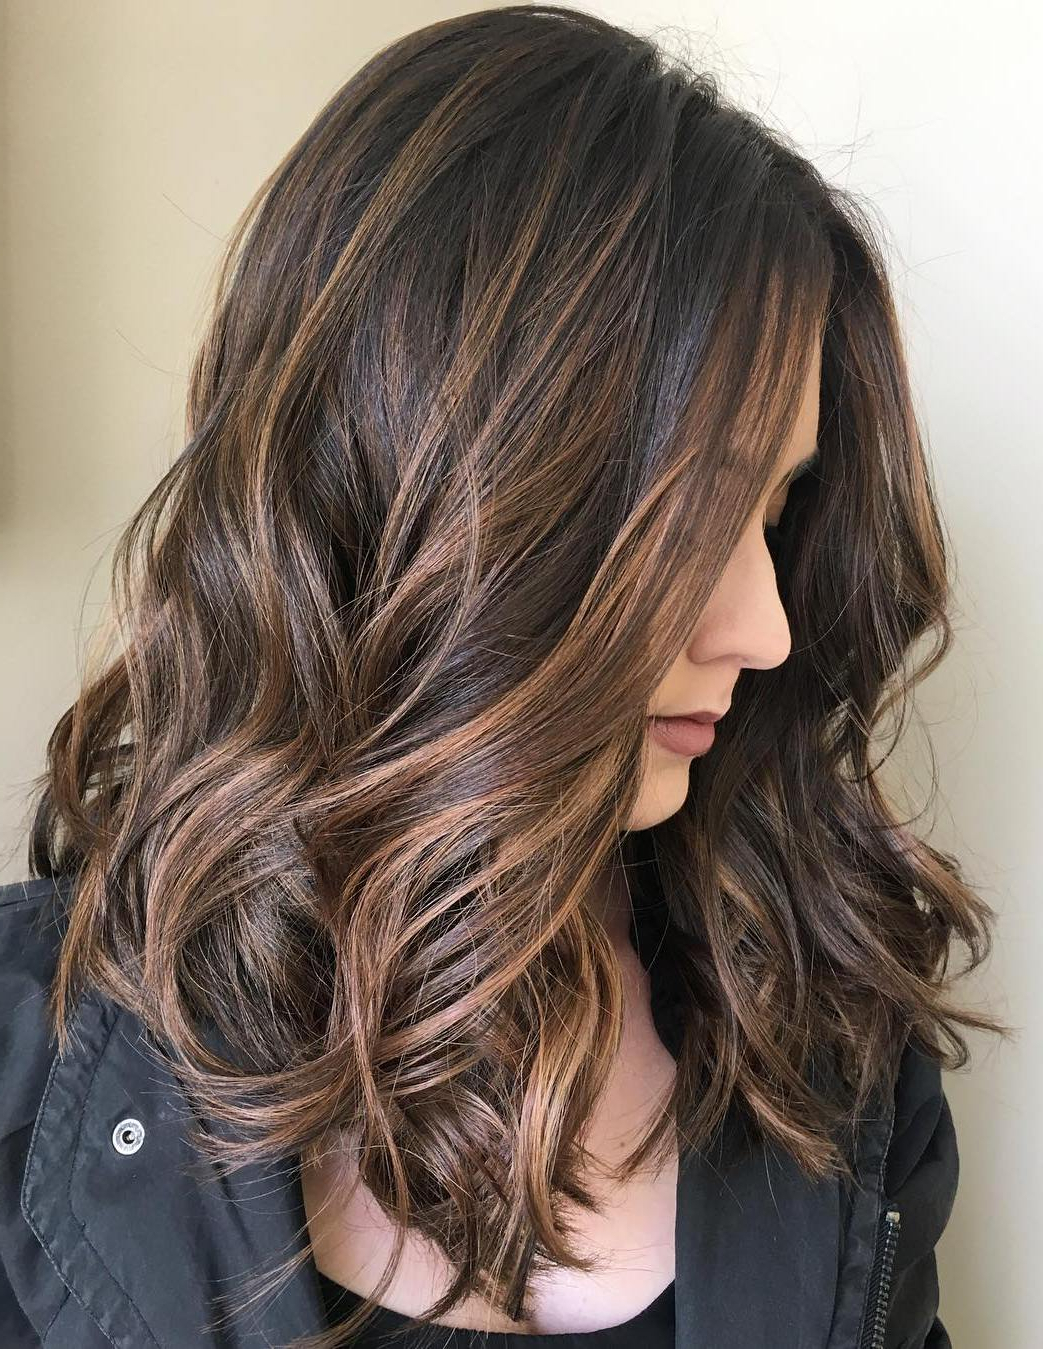 70 Balayage Hair Color Ideas With Blonde, Brown And Caramel Highlights For Trendy Balayage Hairstyles For Long Layers (Gallery 4 of 20)